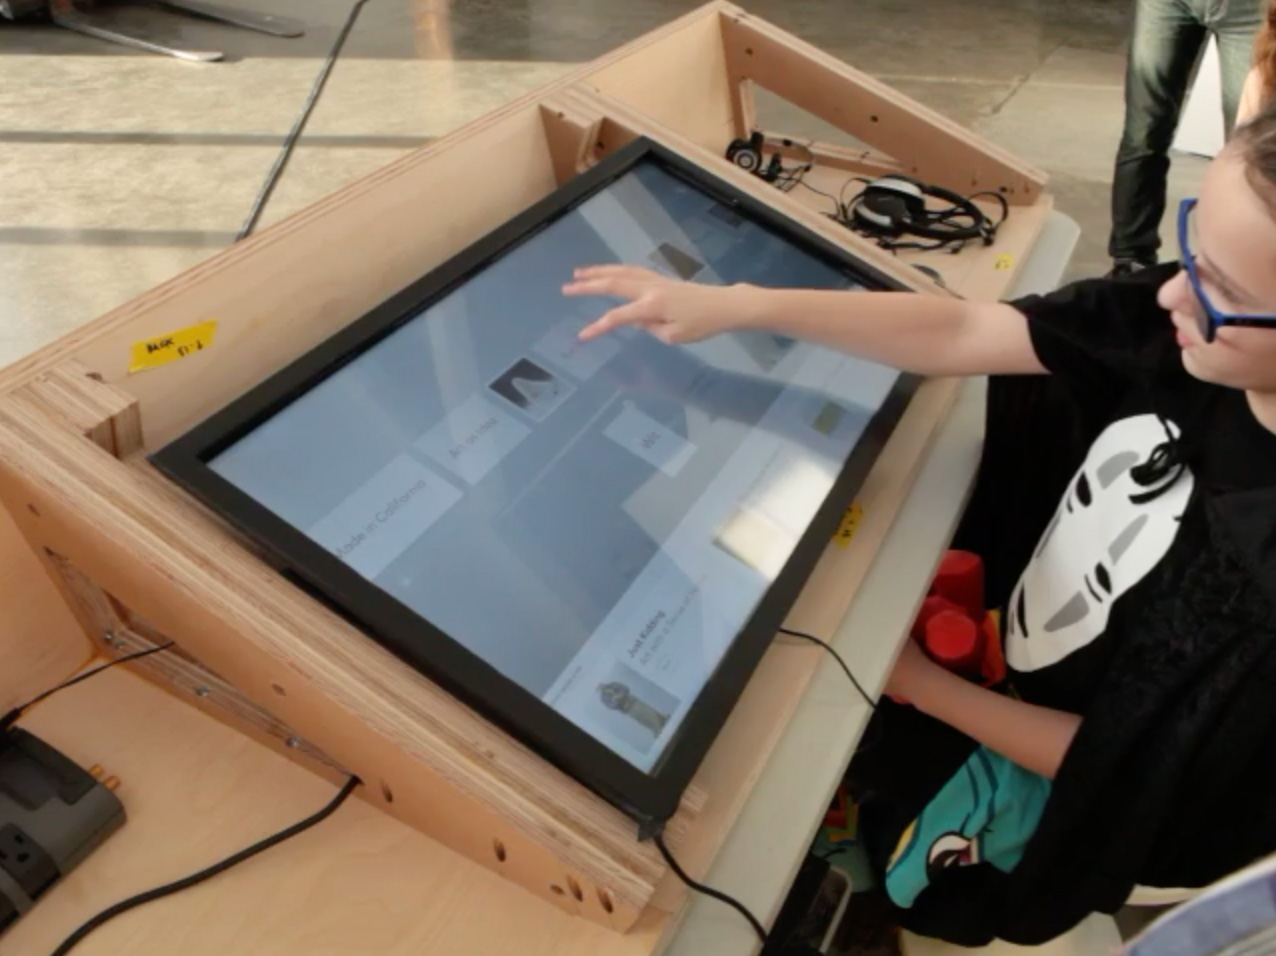 A young girl tests a prototype version of the Table Experience, placing her finger on a touchscreen mounted inside a wooden box.